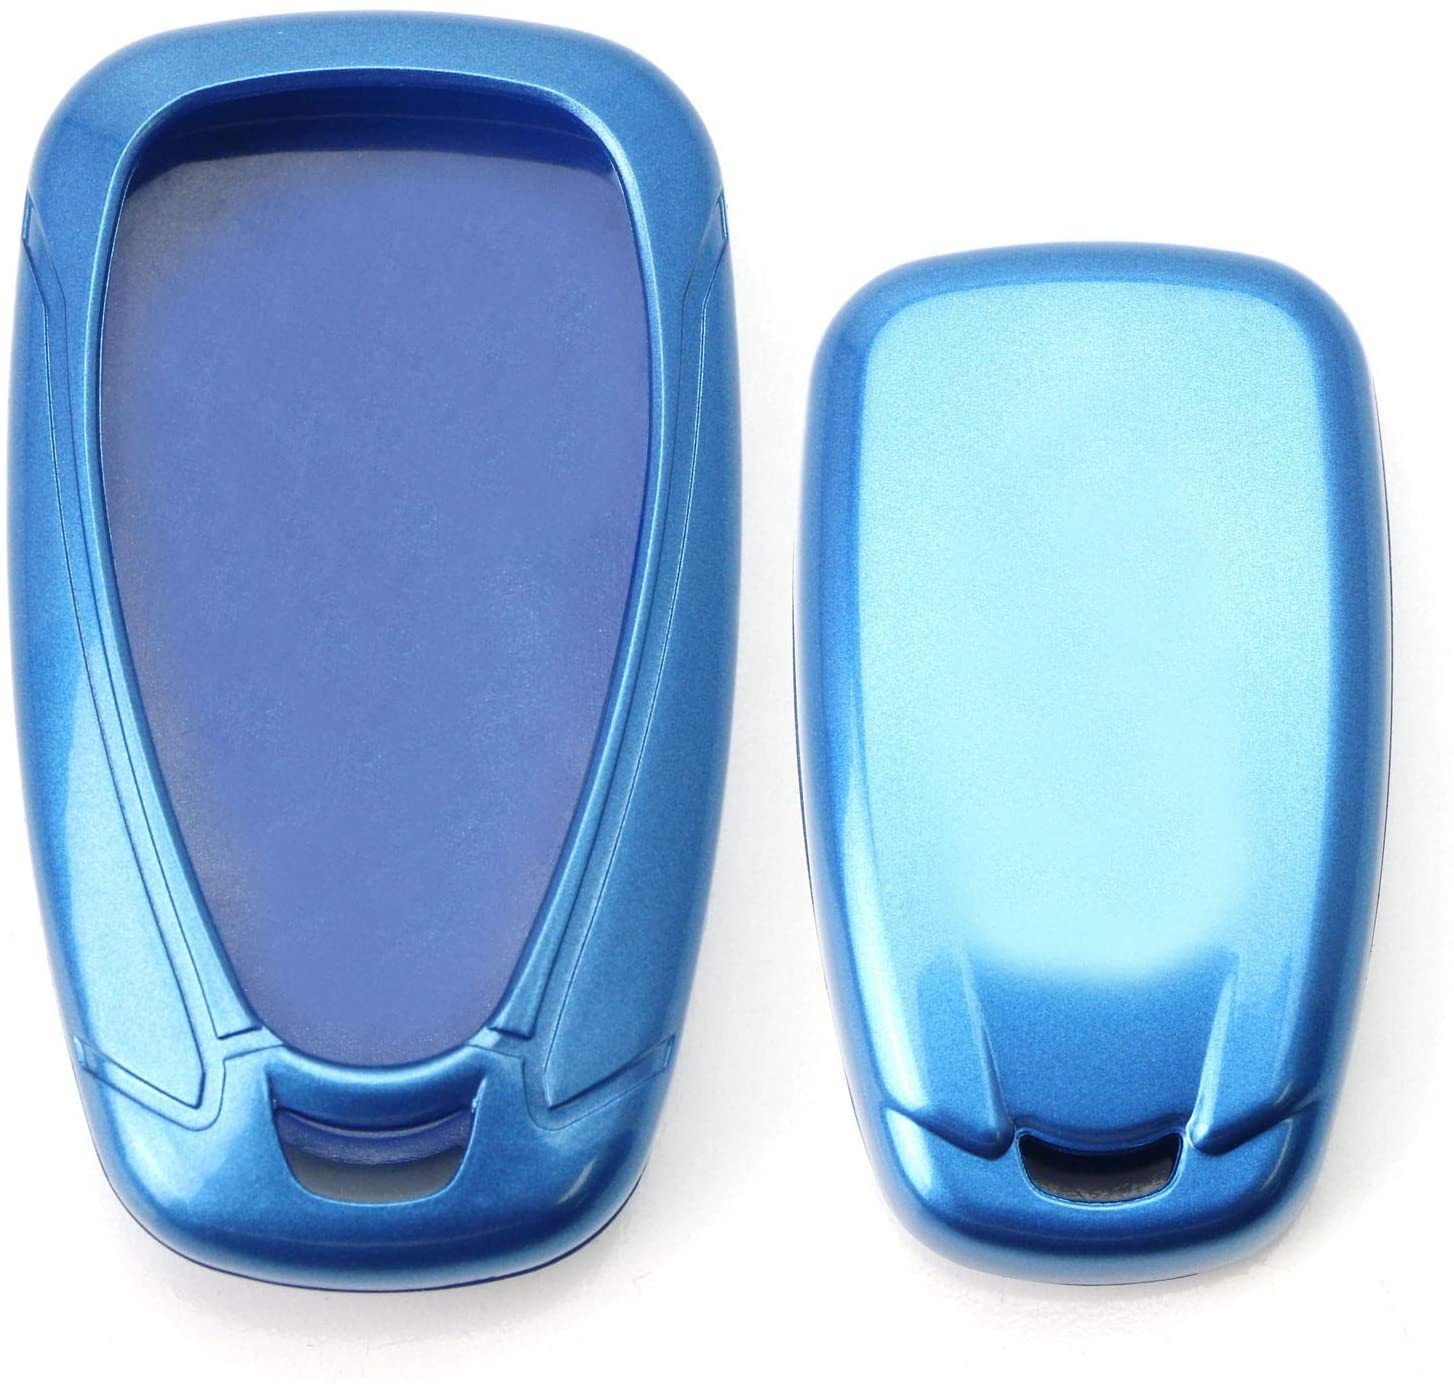 iJDMTOY Glossy Metallic Blue Exact Fit Key Fob Shell Cover Compatible With 2016-up Chevrolet Camaro Cruze Spark Volt, 2017-up Malibu Bolt Sonic Trax, etc